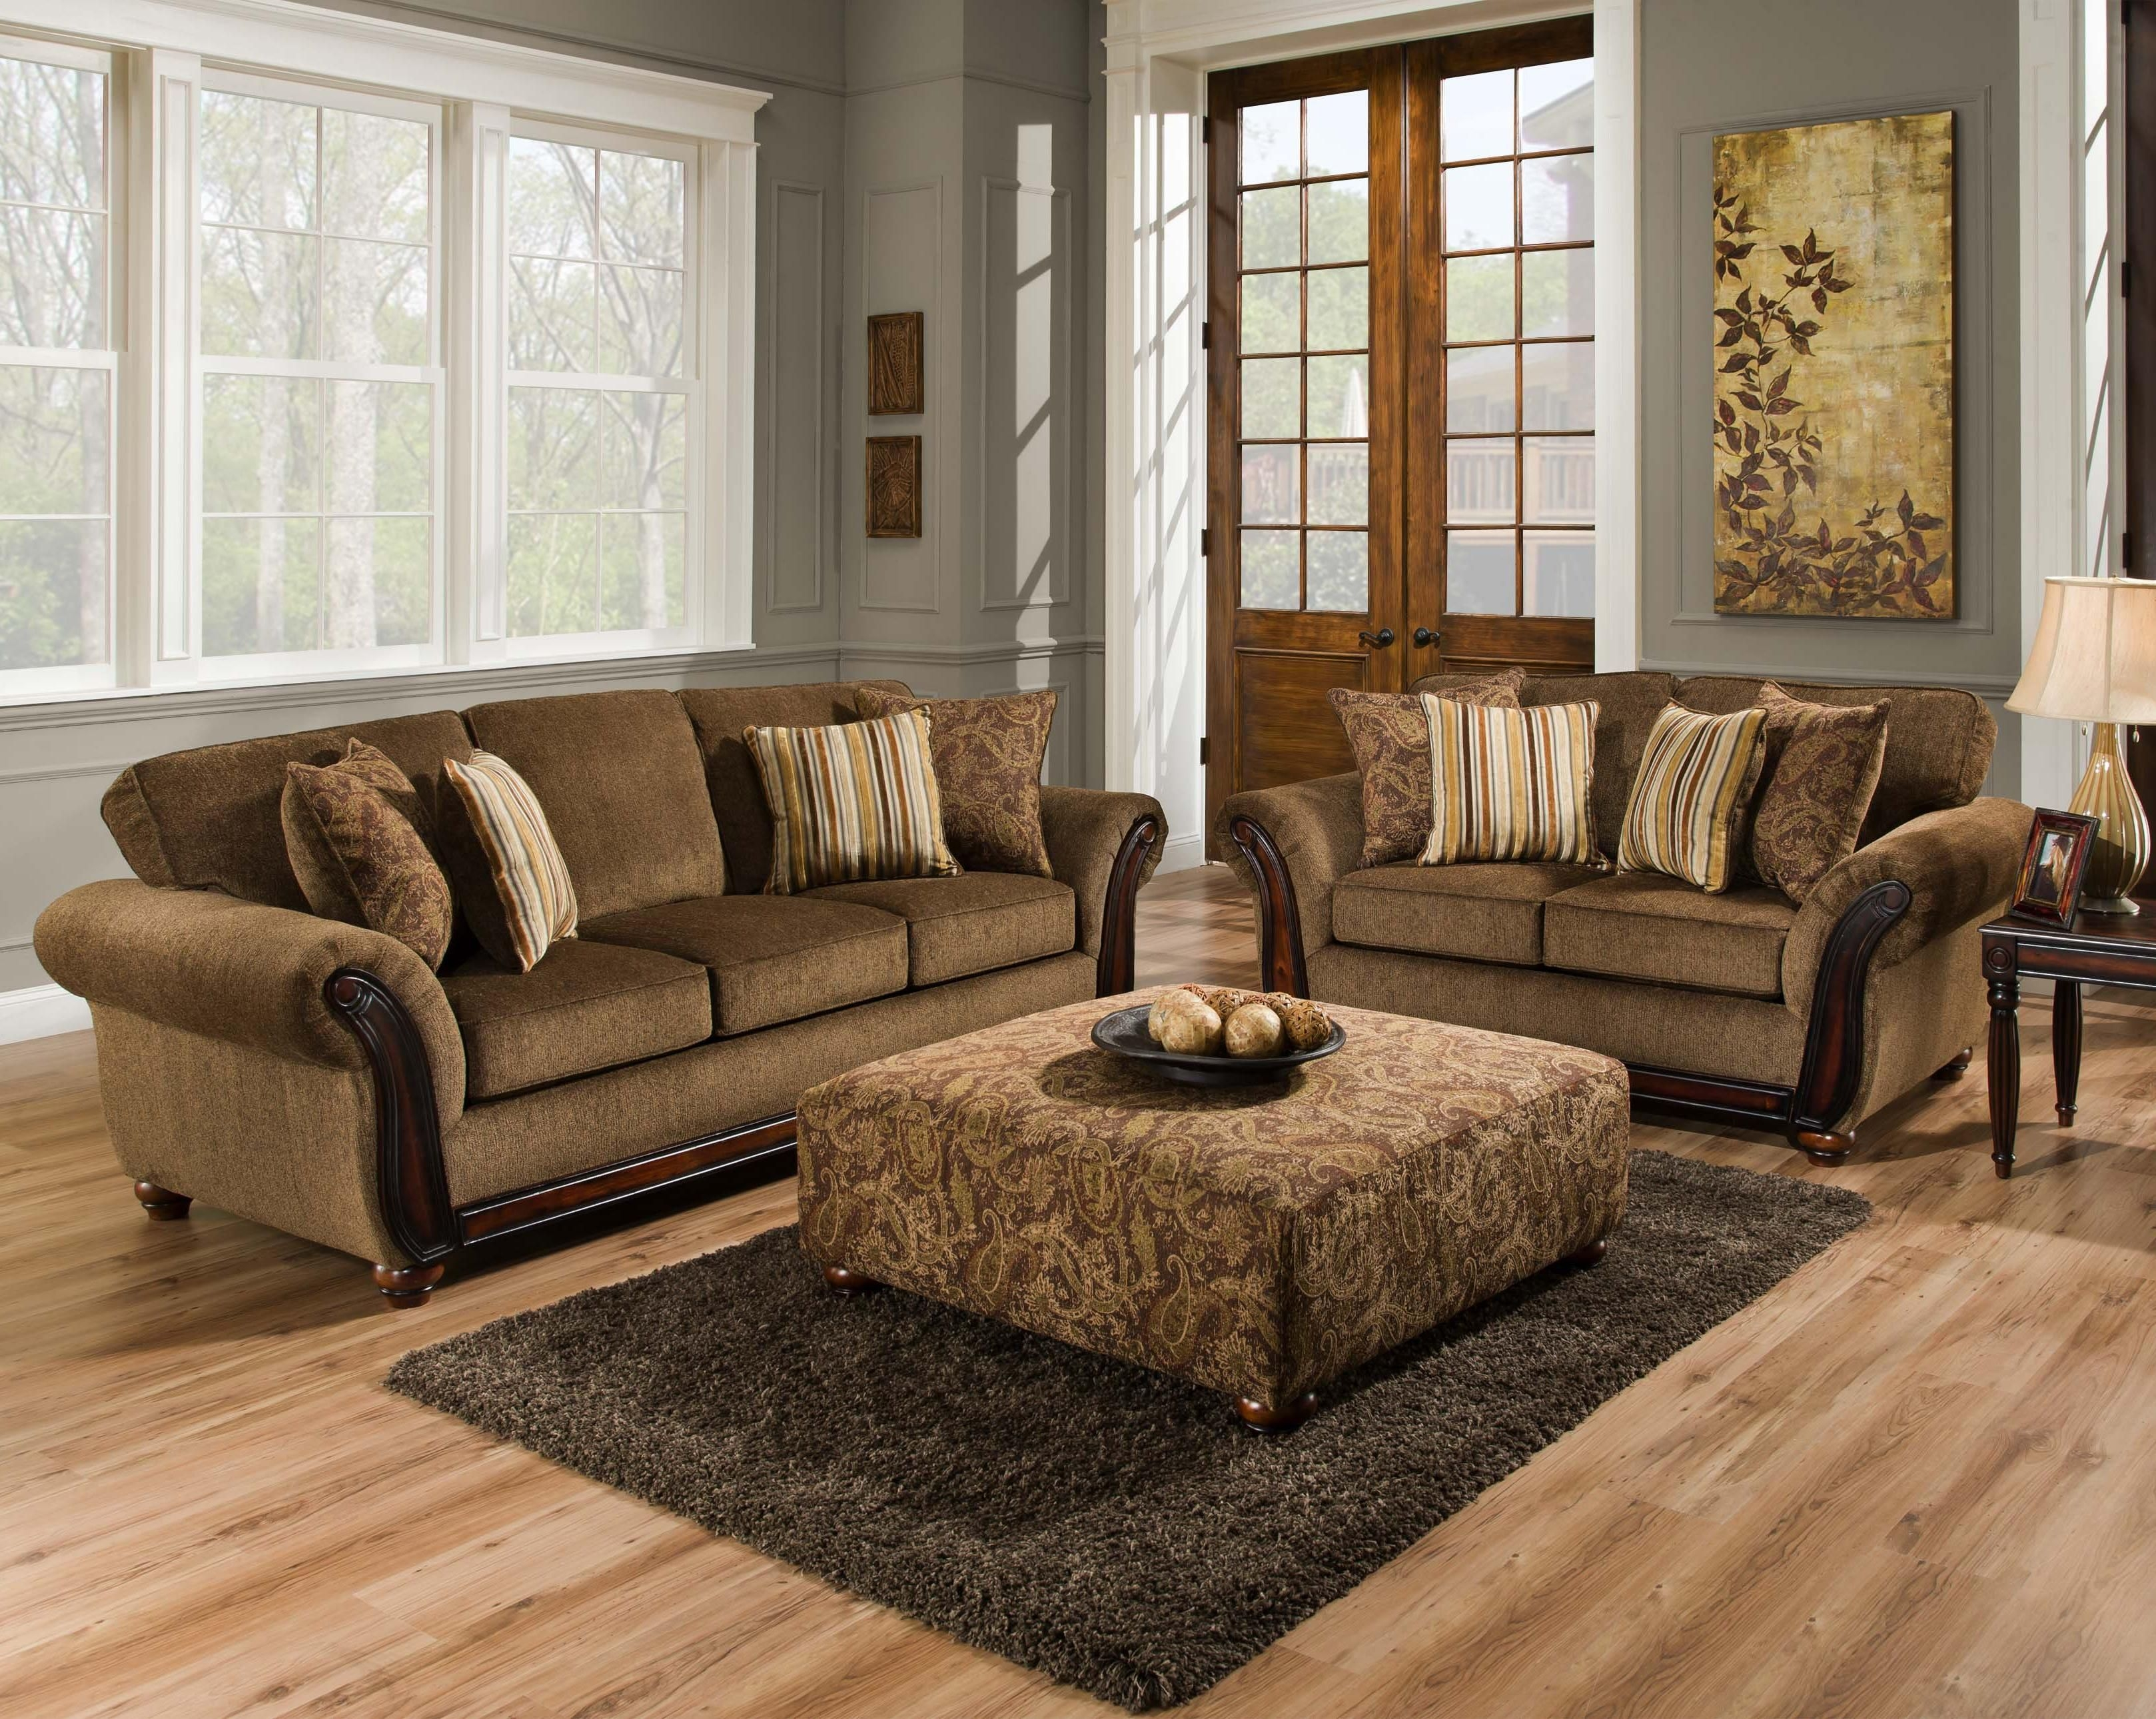 American Furniture 5650 Sofa With Wood Face On Arms  Miskelly Furniture  Sofas